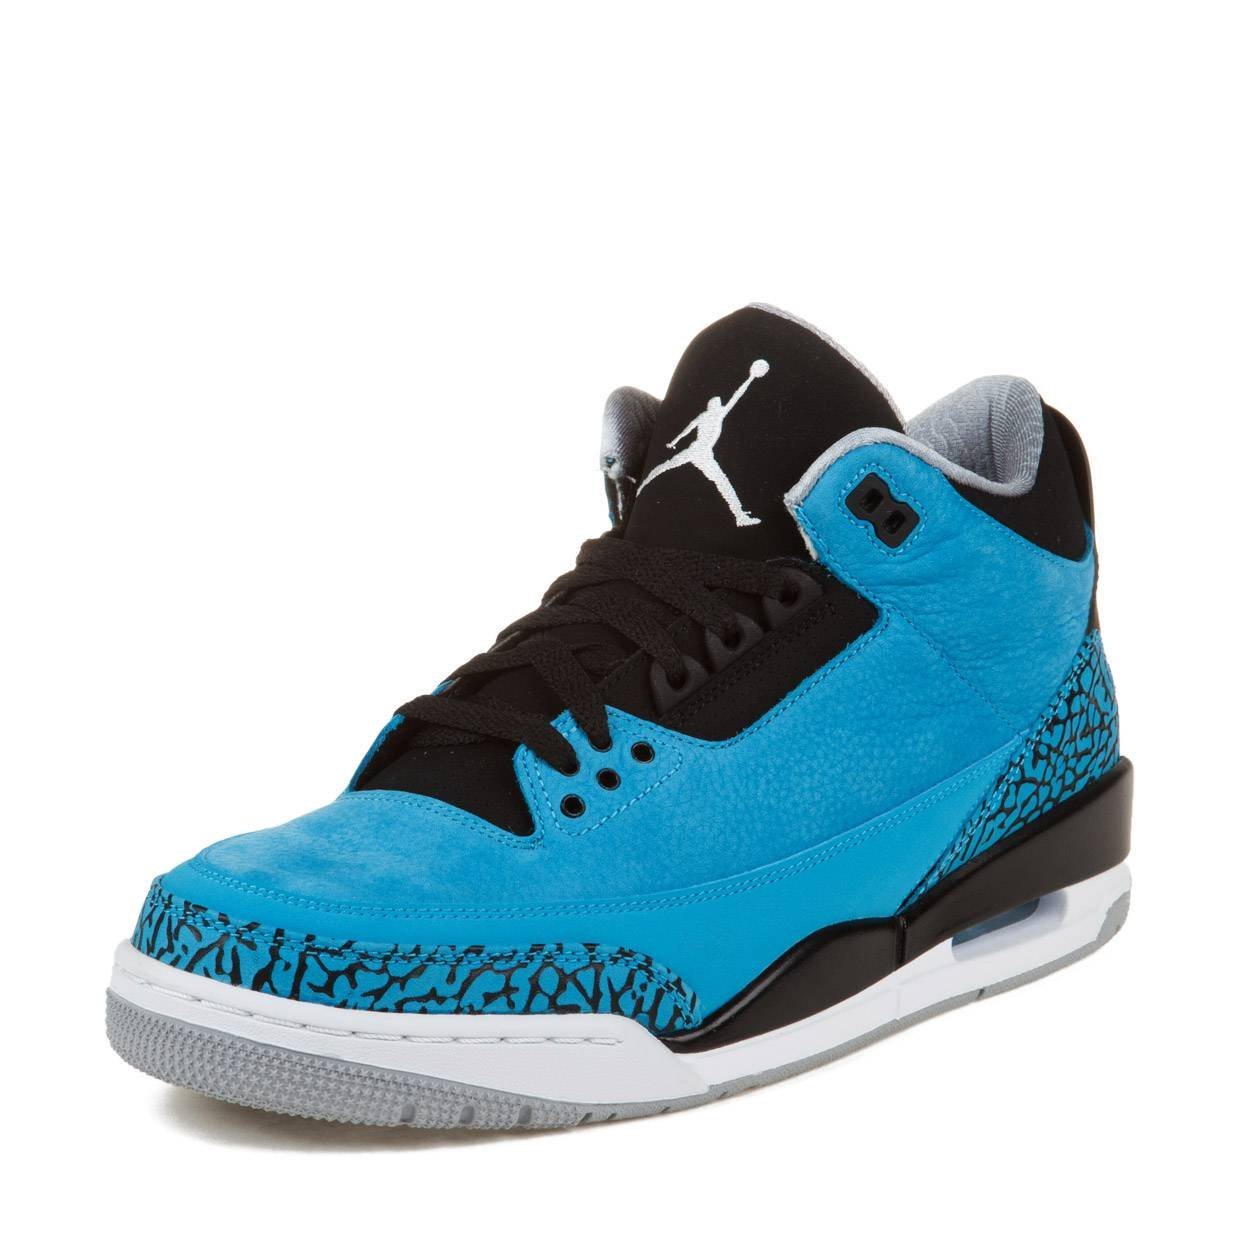 0f790cd4d9 NIKE Mens Air Jordan 3 Retro Powder White/Fire Red-cement Grey Leather  Basketball